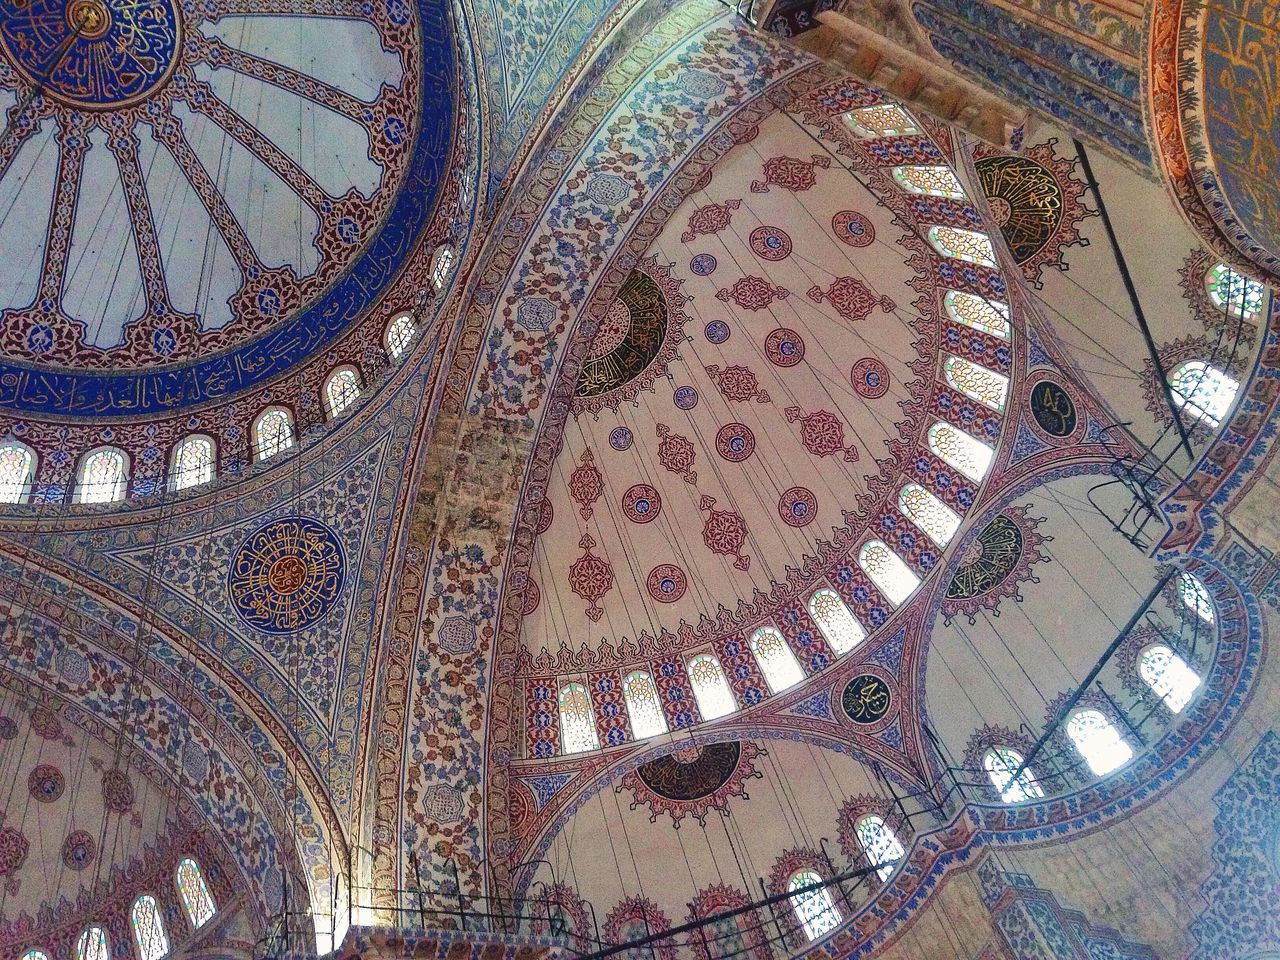 architecture, indoors, ceiling, travel destinations, dome, tourism, low angle view, built structure, history, place of worship, religion, no people, day, architectural design, close-up